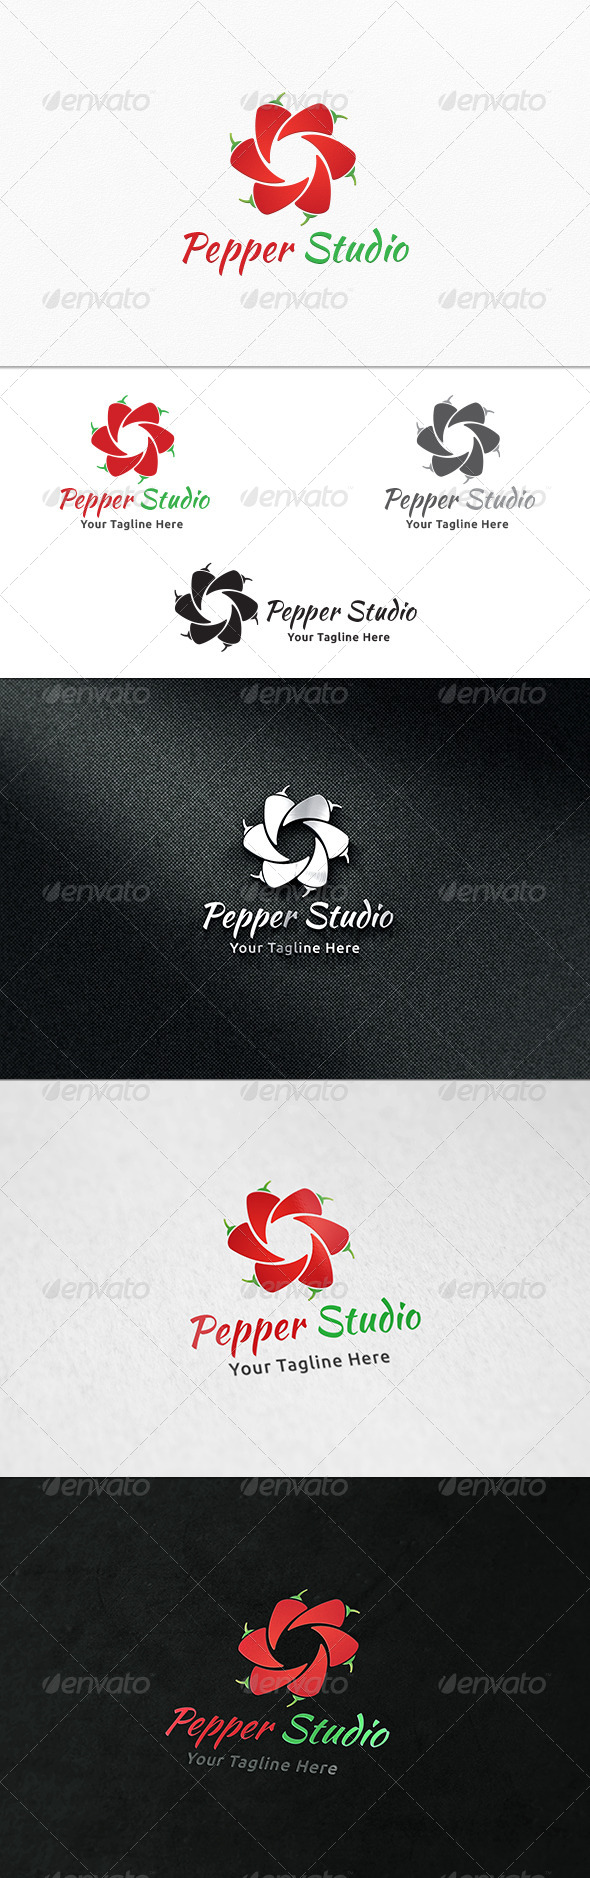 GraphicRiver Pepper Studio Logo Template 8188269